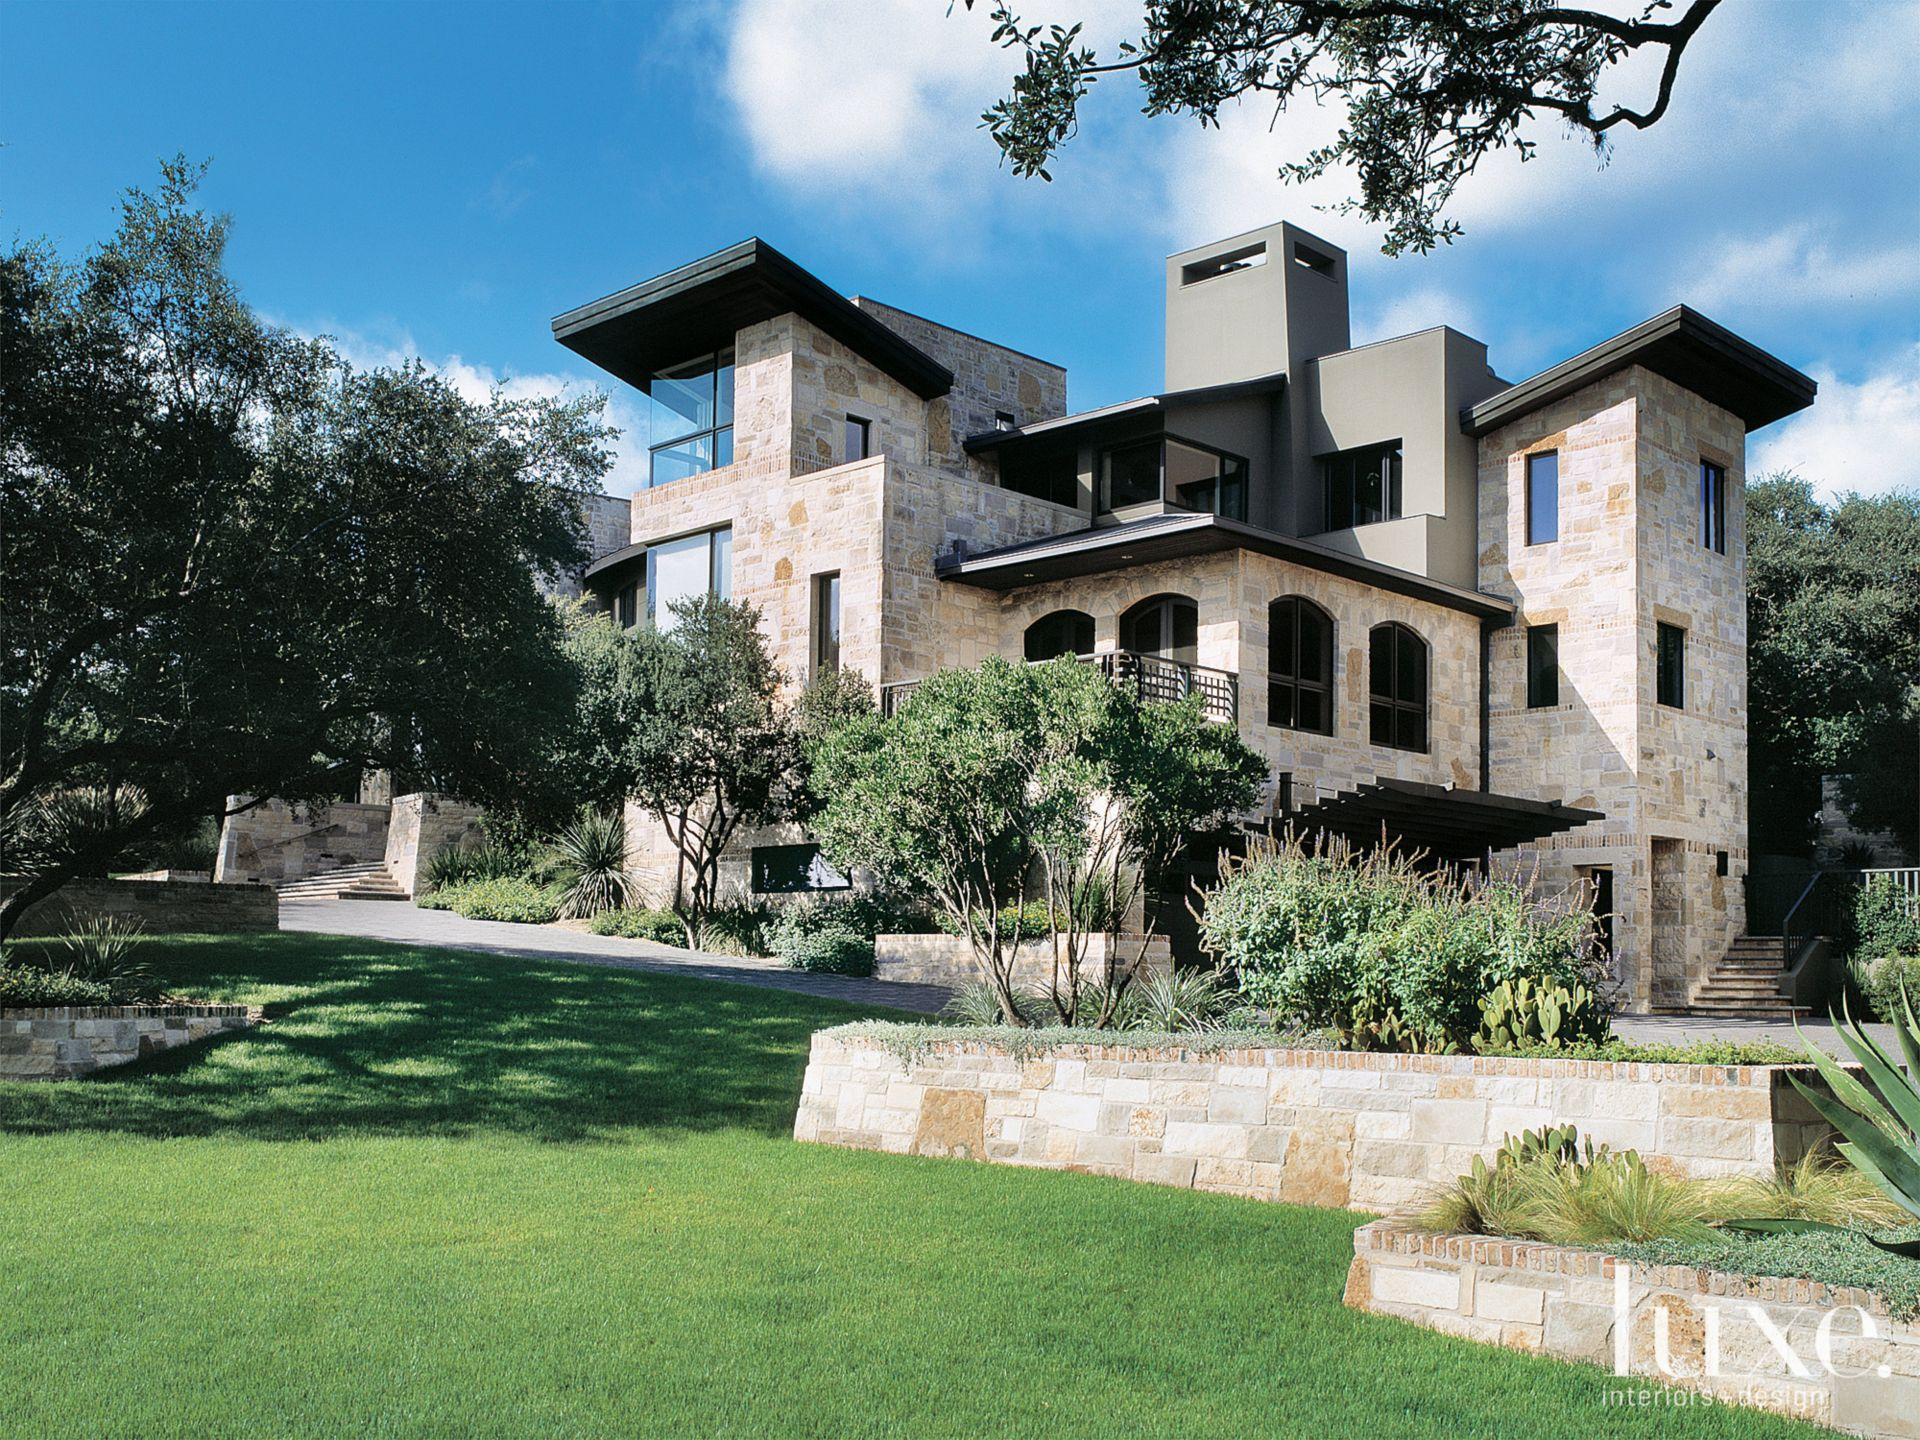 Transitional Limestone and Stucco Exterior with Curated Landscape